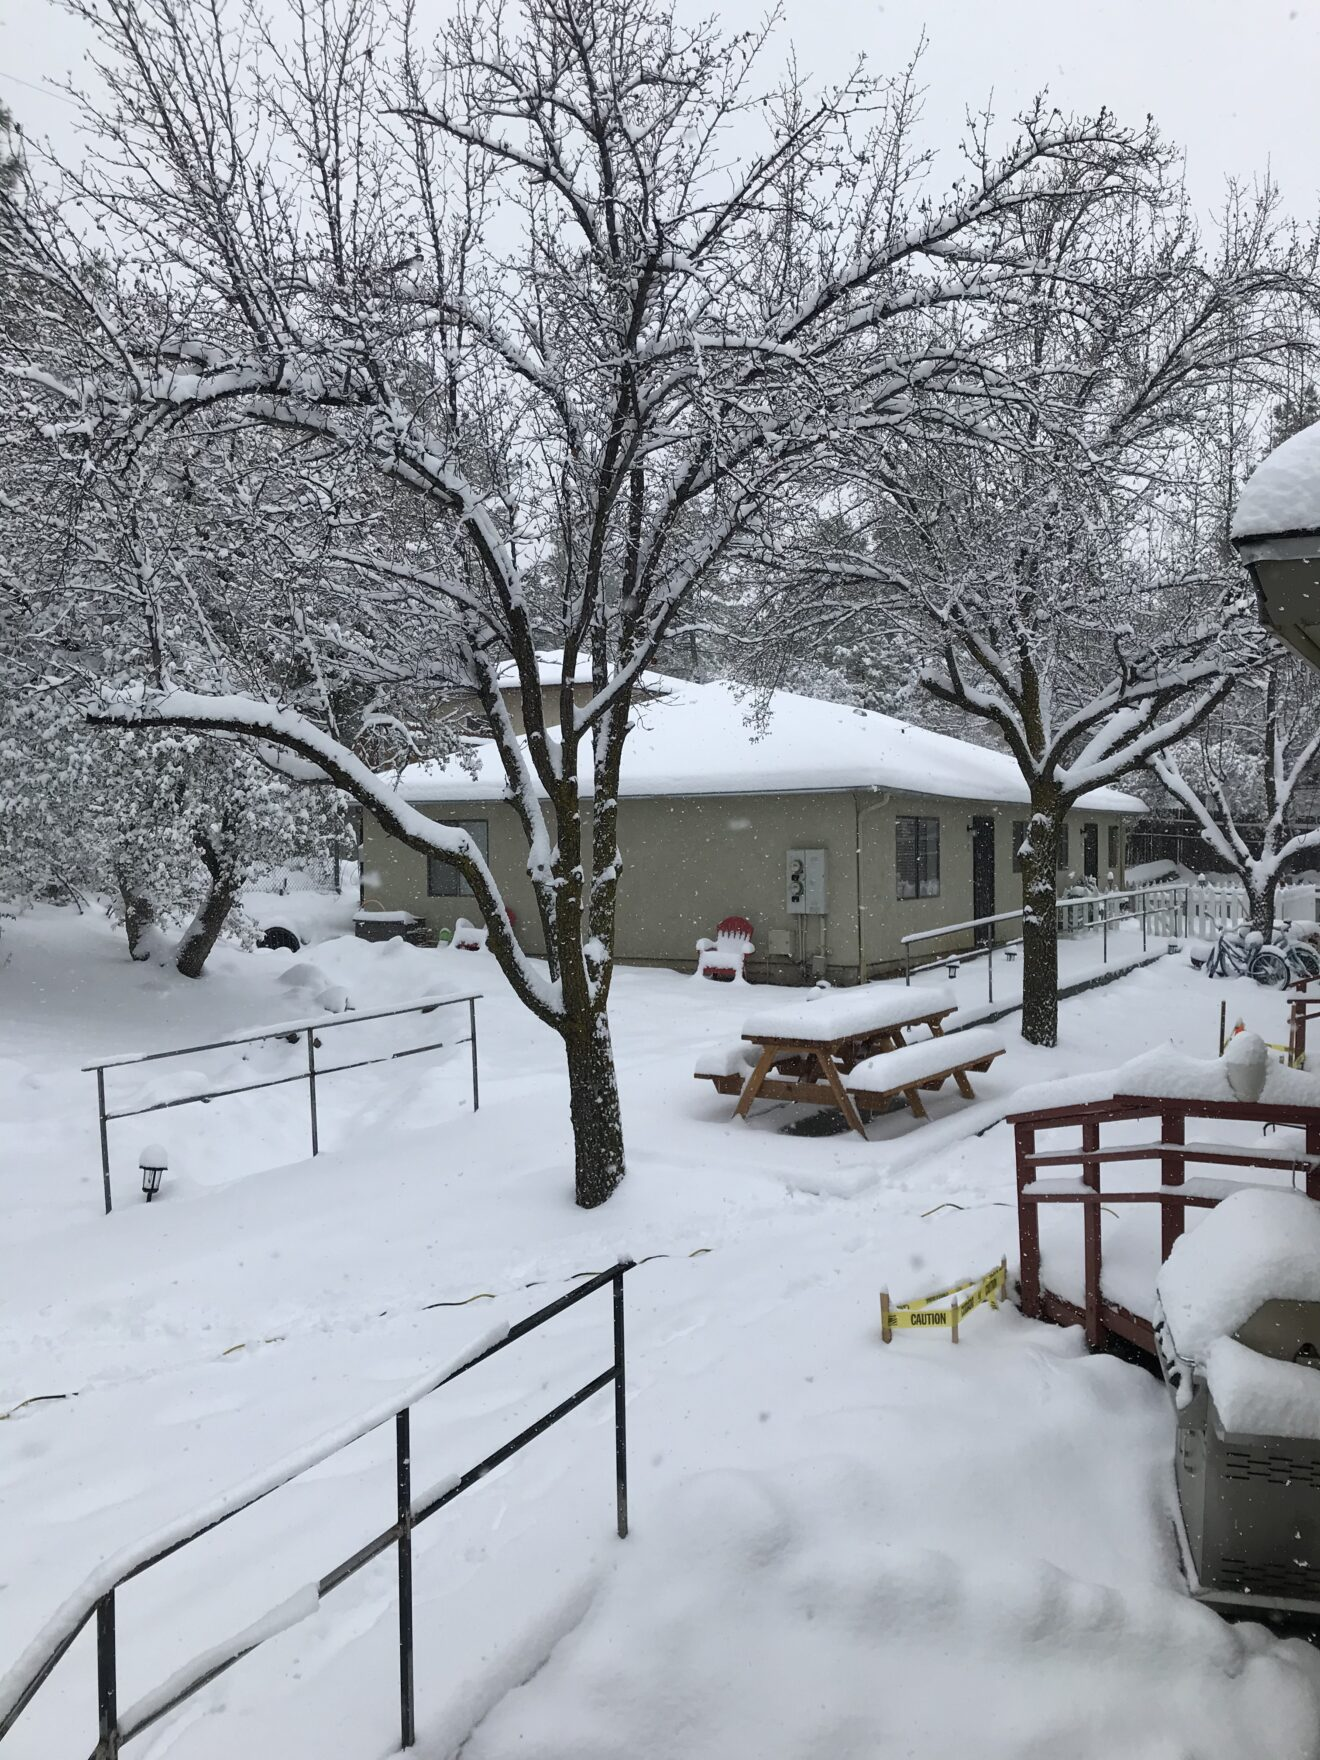 Warm Home For Agape Families on a Snowy Day